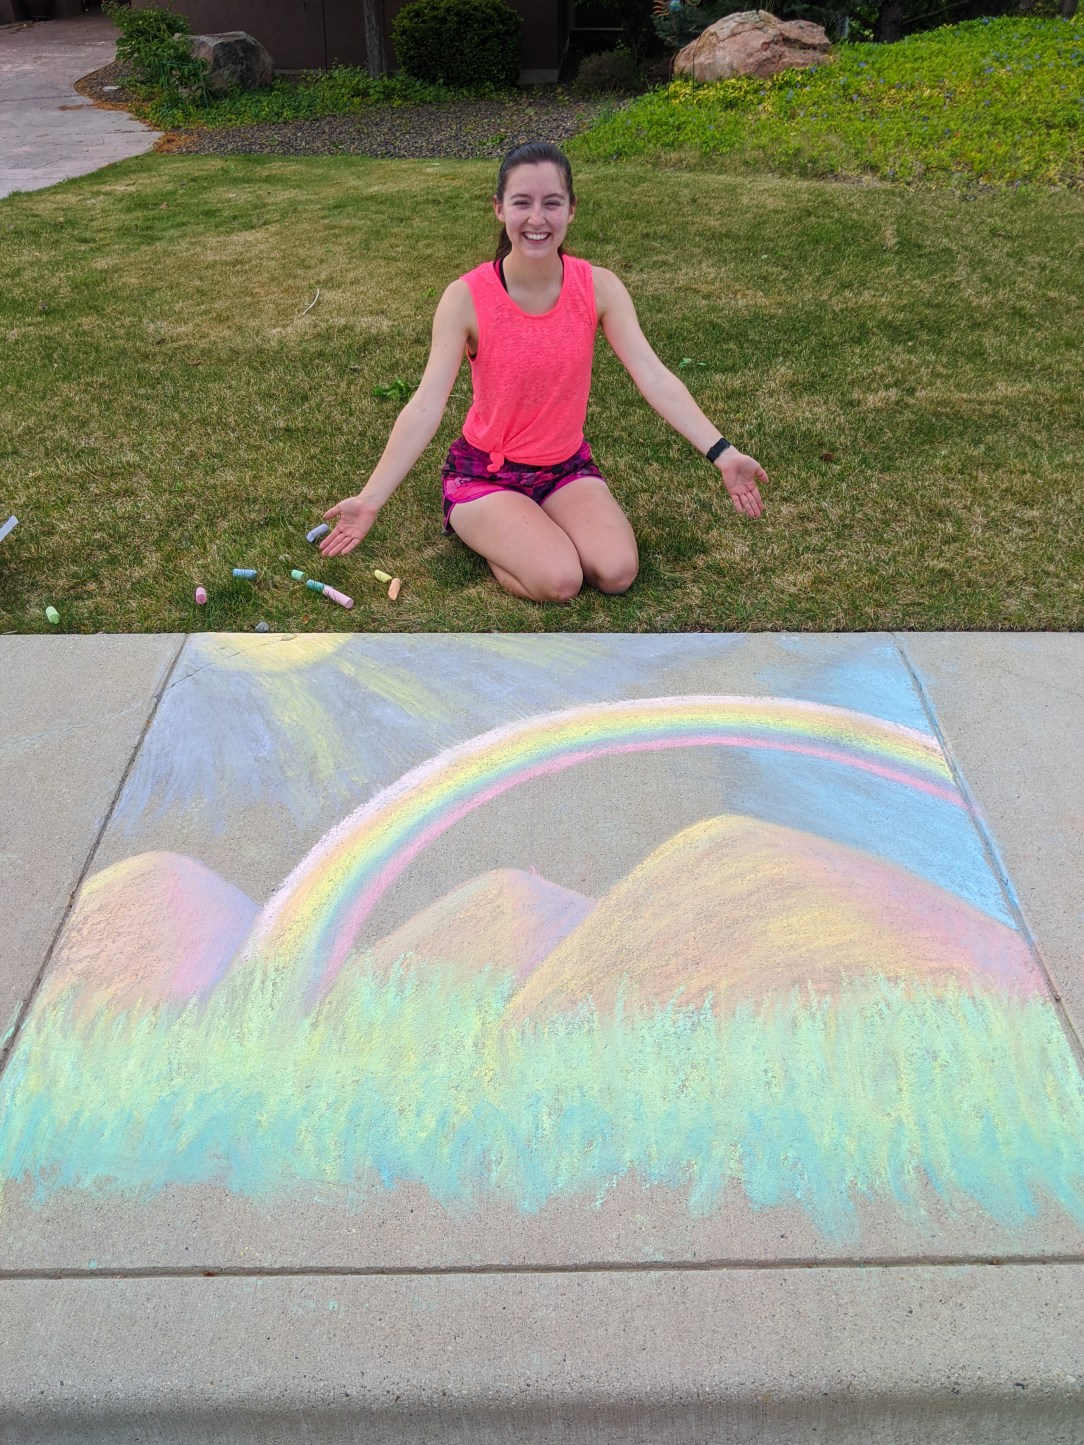 quarantine-chalk-art-sidewalk-activities